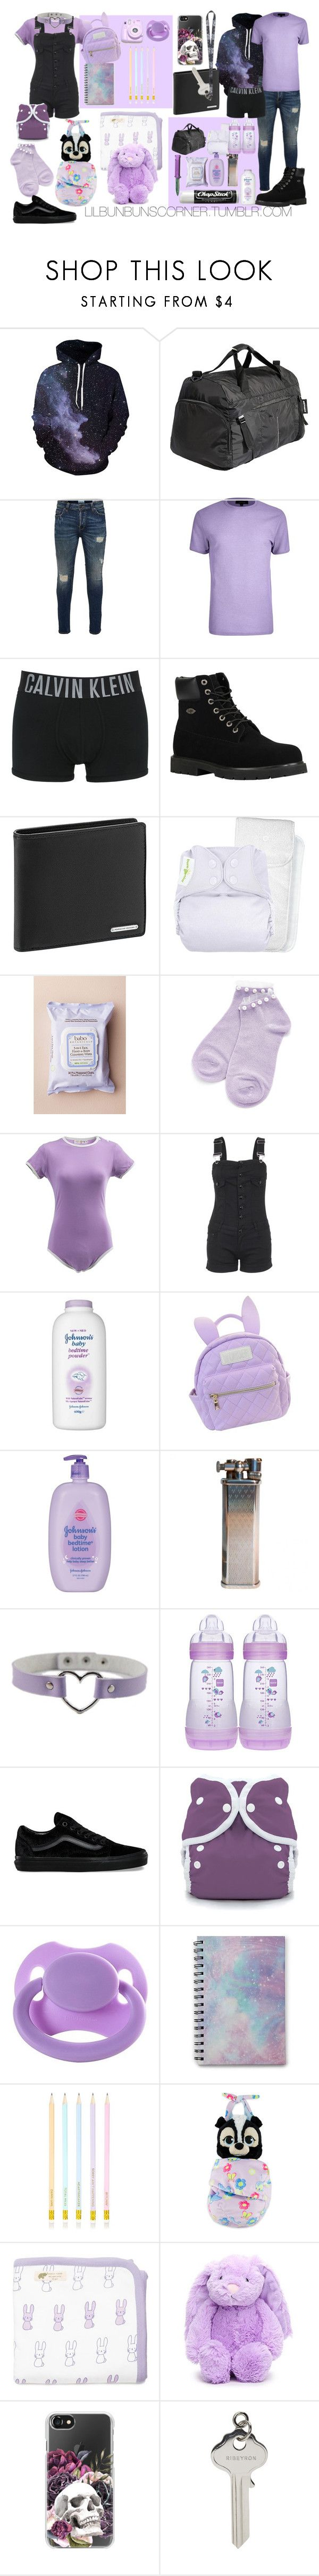 """purple daddy & purple baby"" by ittybittybunbun ❤ liked on Polyvore featuring Tucano, Only & Sons, River Island, Calvin Klein Underwear, Lugz, Porsche Design, Babo Botanicals, Chapstick, Equipment and cutekawaii"